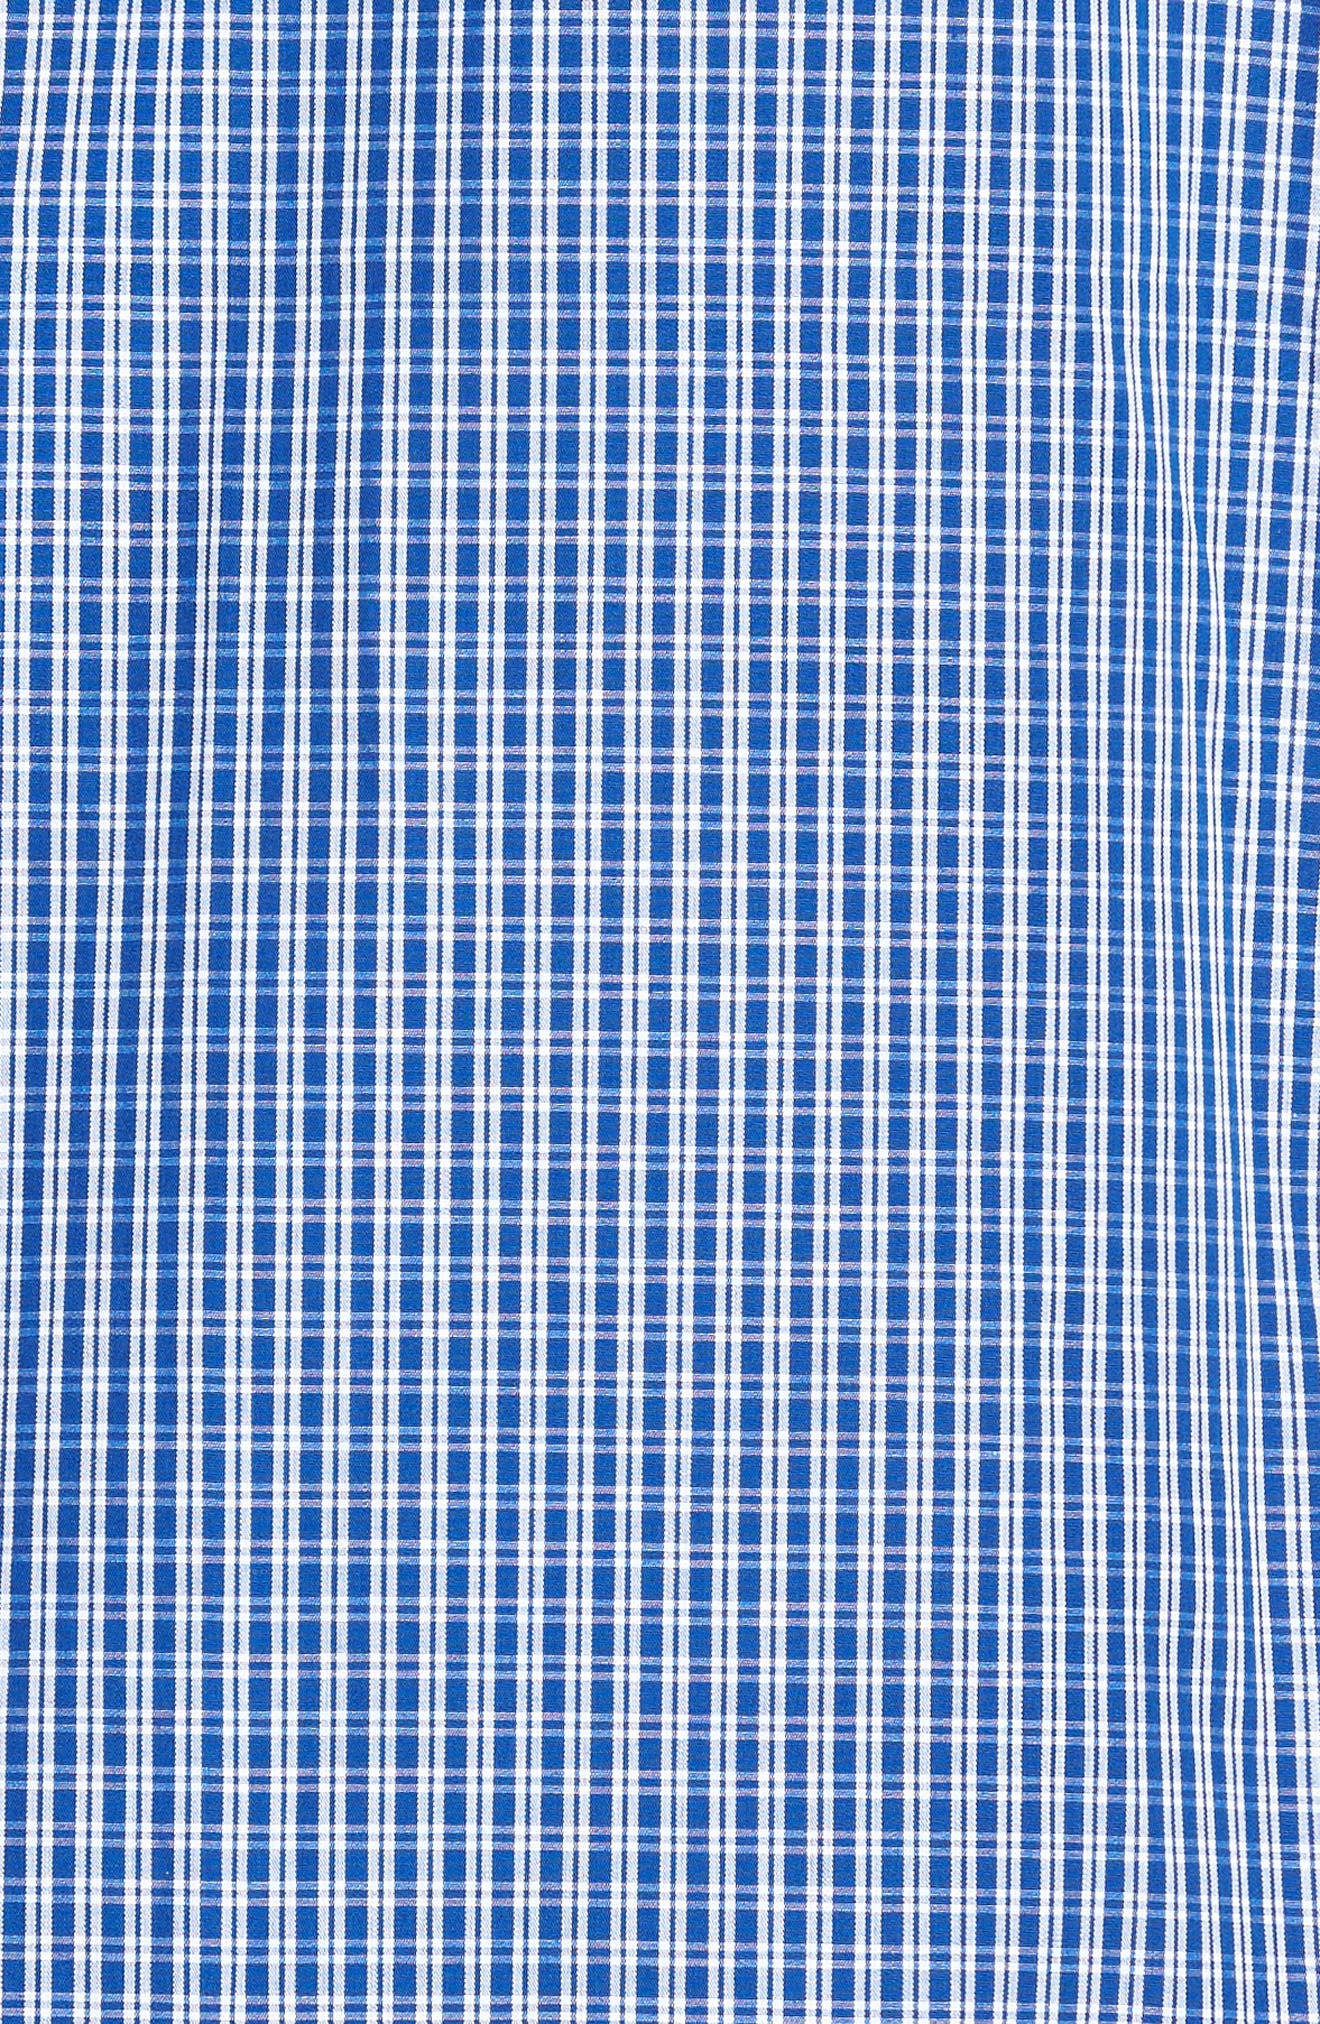 Poplin Pajama Set,                             Alternate thumbnail 5, color,                             BLUE DEEP MICRO CHECK